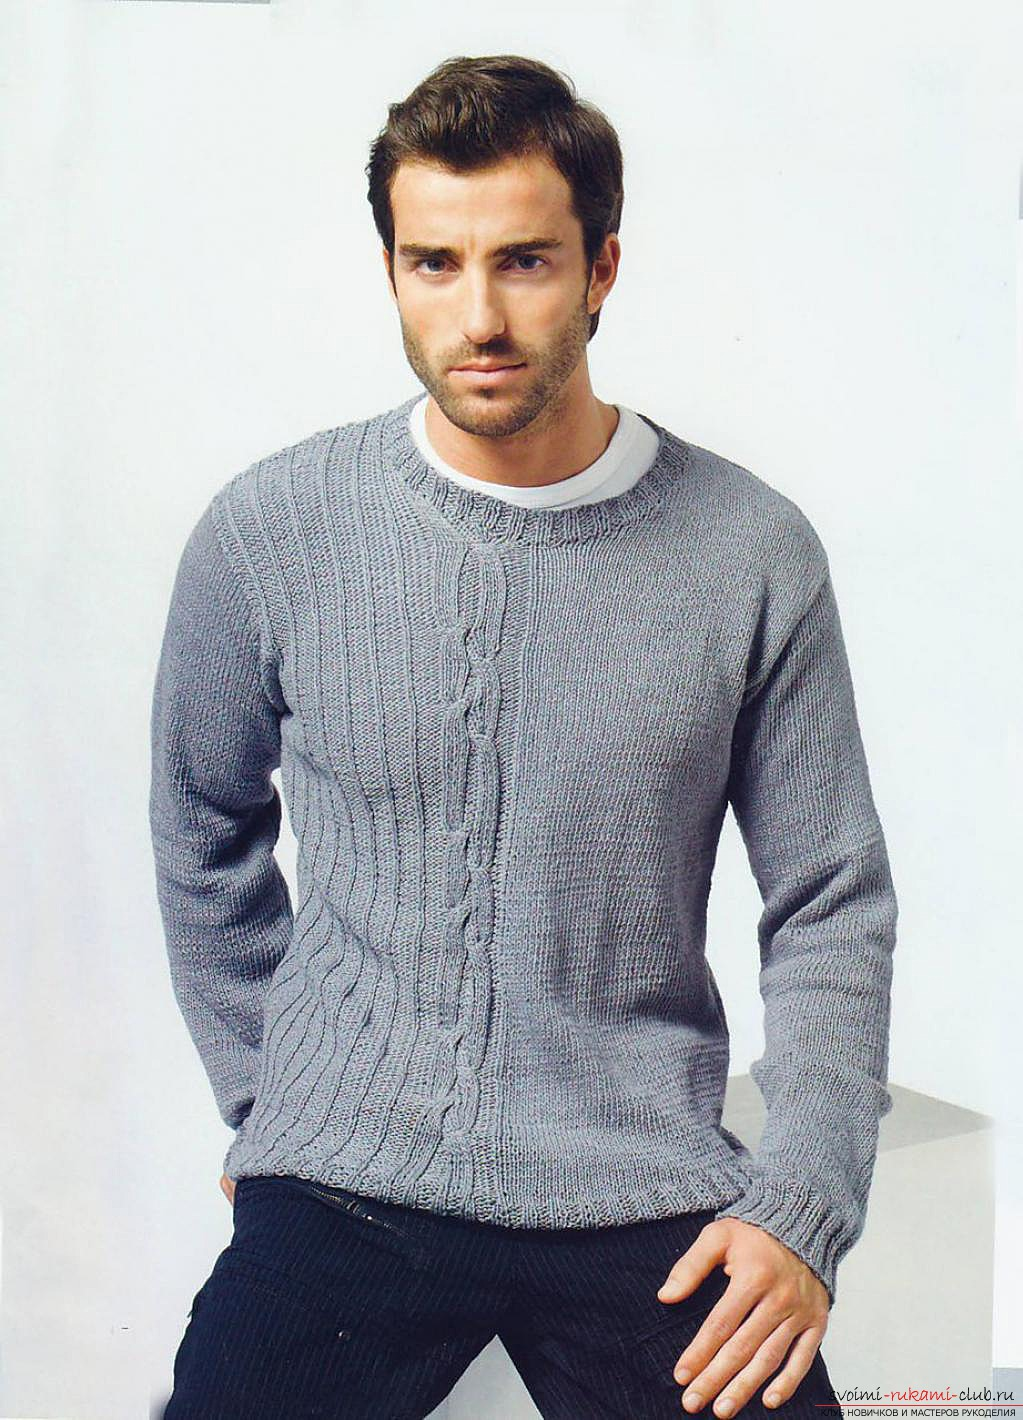 knitted knitted sweater. Photo №5